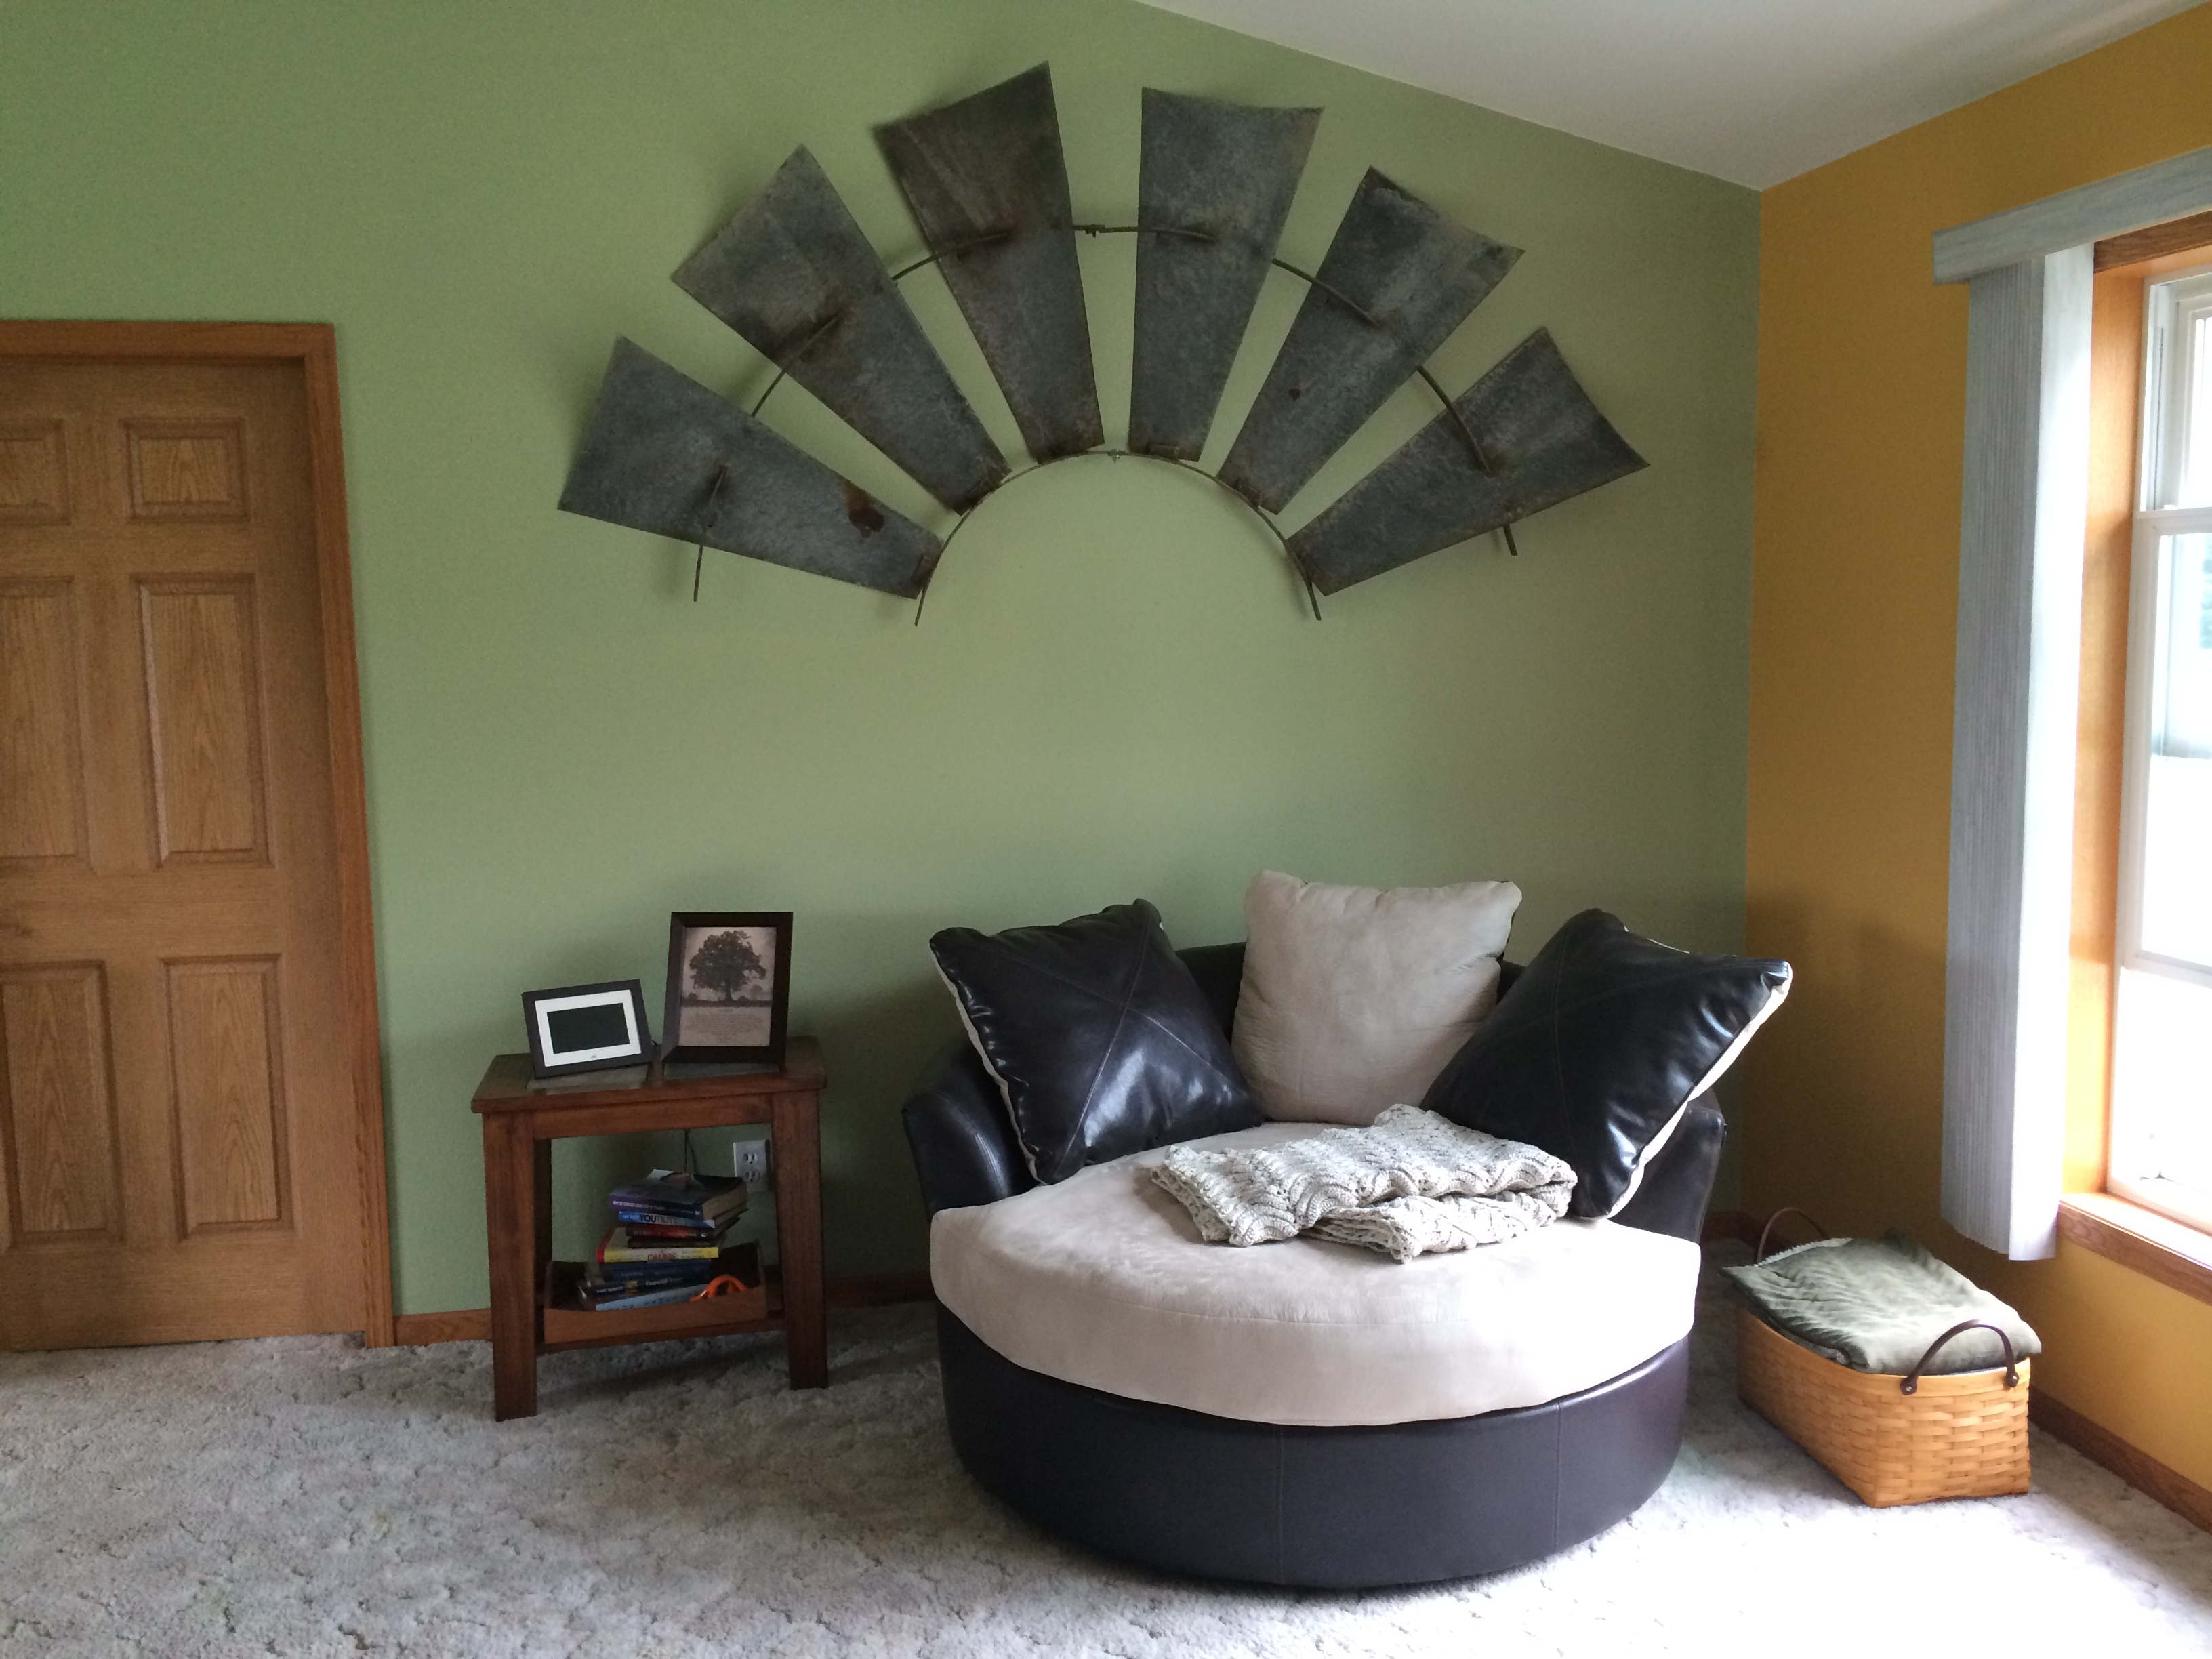 How To Hang a Windmill in Your Living Room